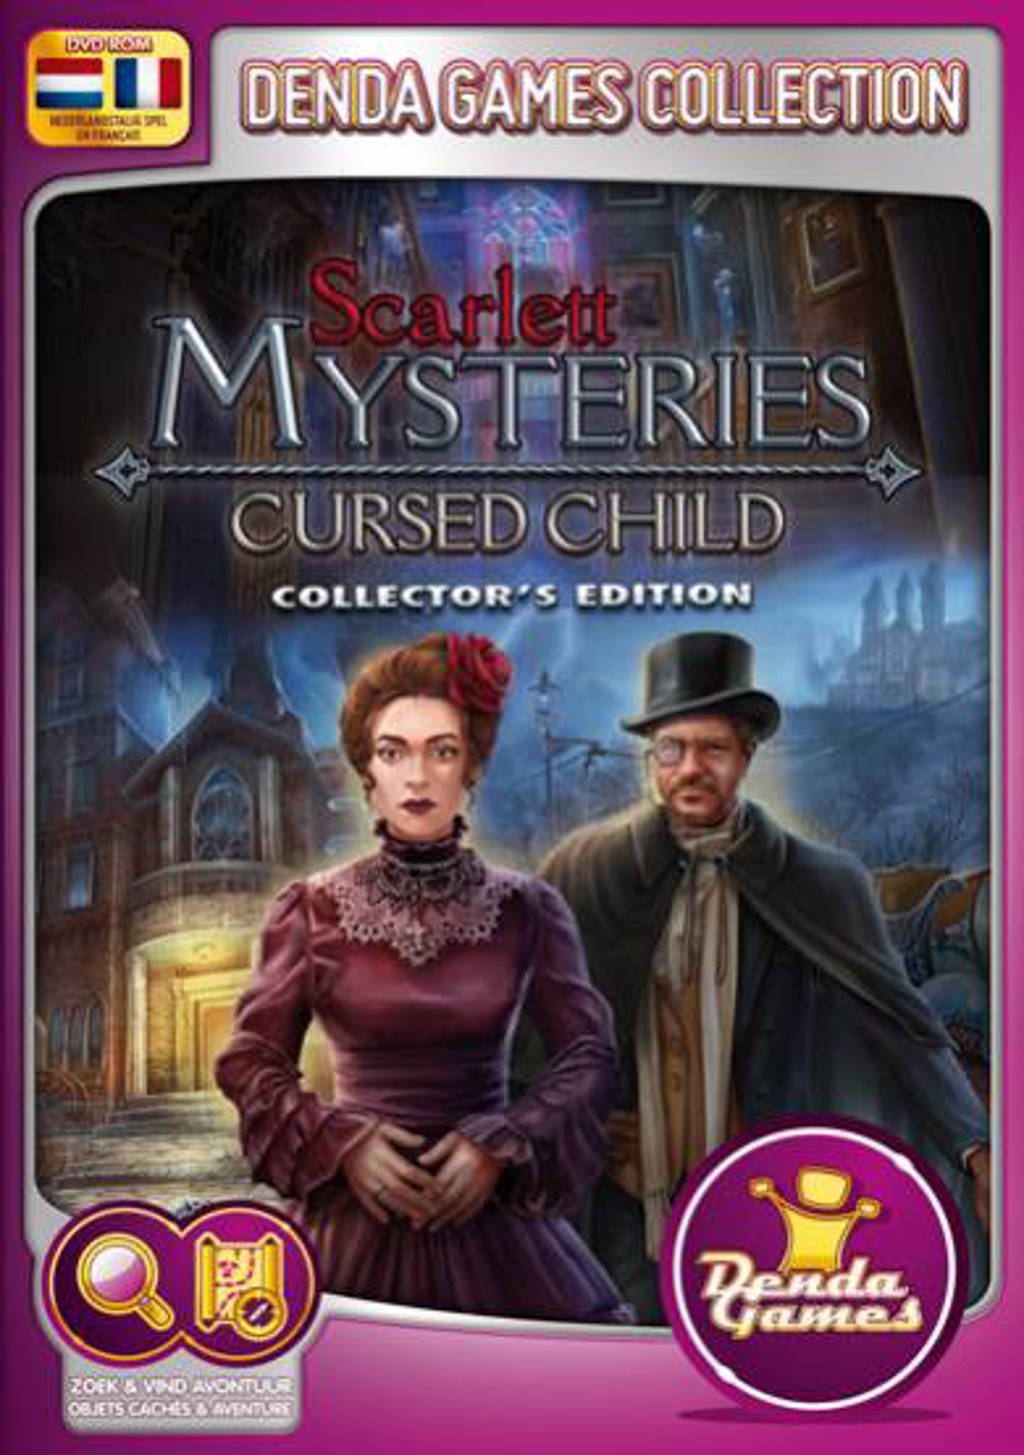 Scarlett mysteries - Cursed child (Collectors edition)  (PC)